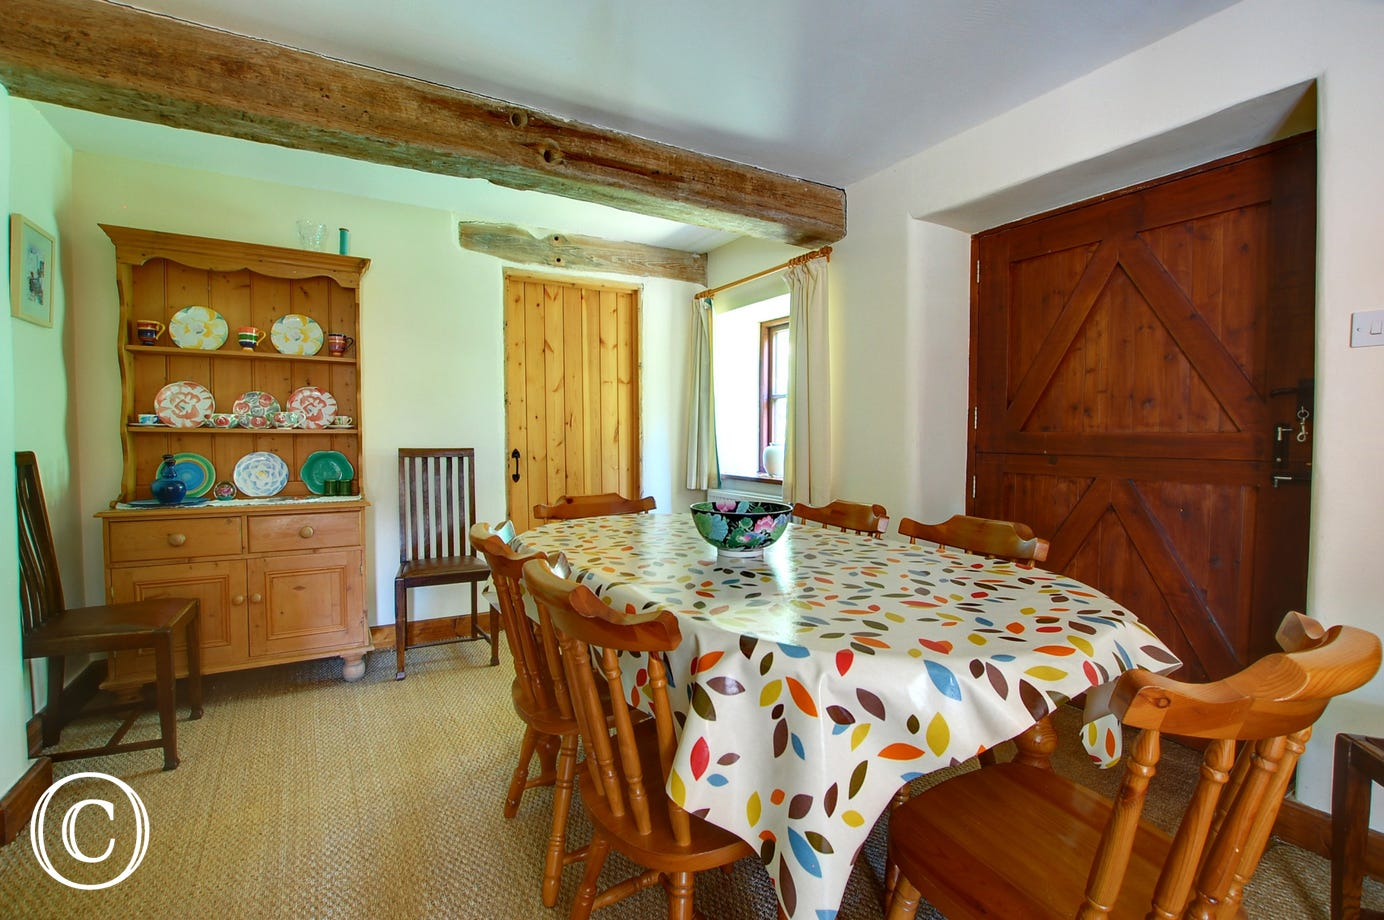 With a dining table, chairs and a pine dresser, perfect for family meals